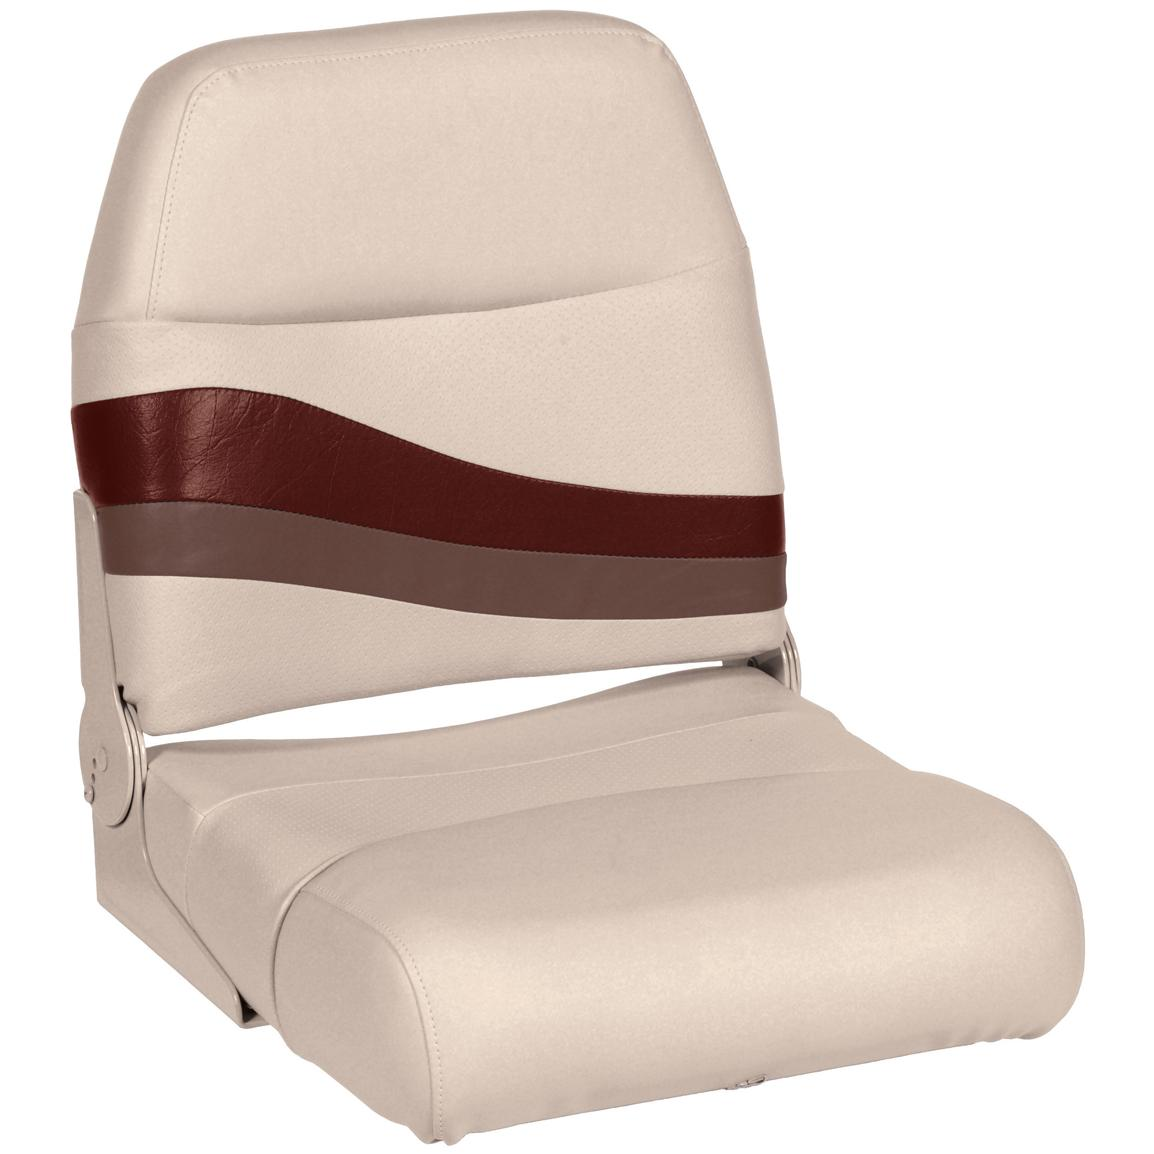 Wise® Premier 1100 Series Pontoon Fishing Seat, Color C